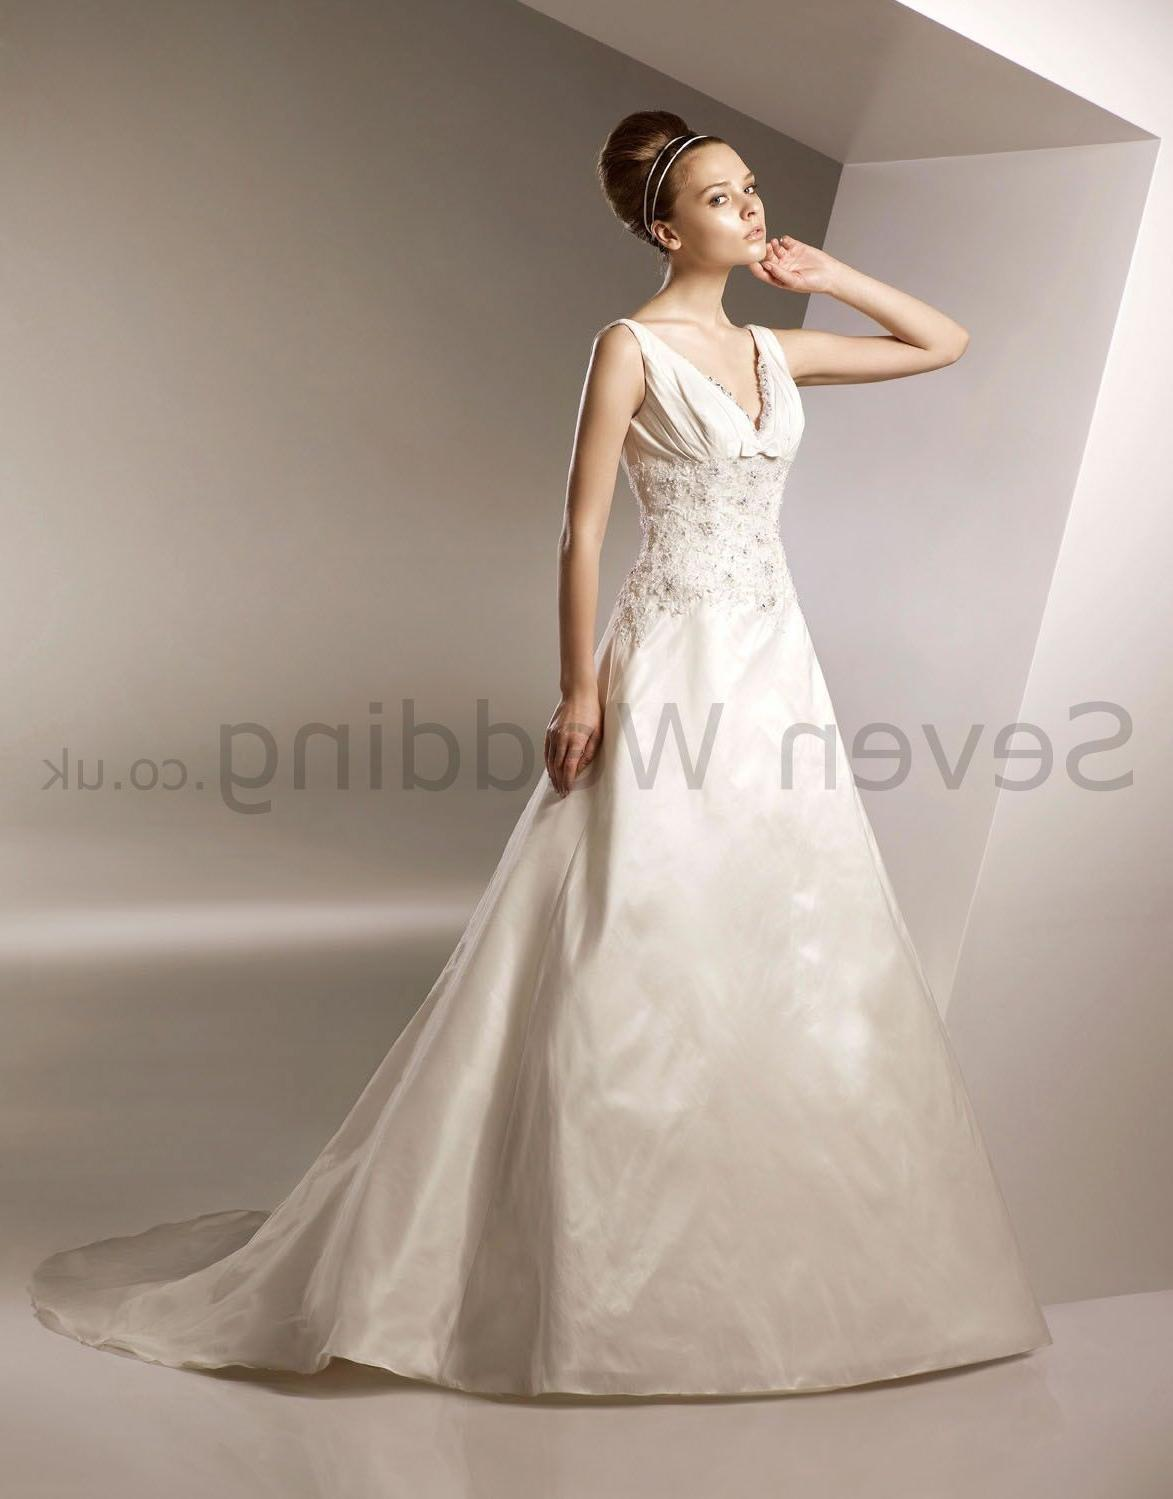 Many of the wedding dresses we